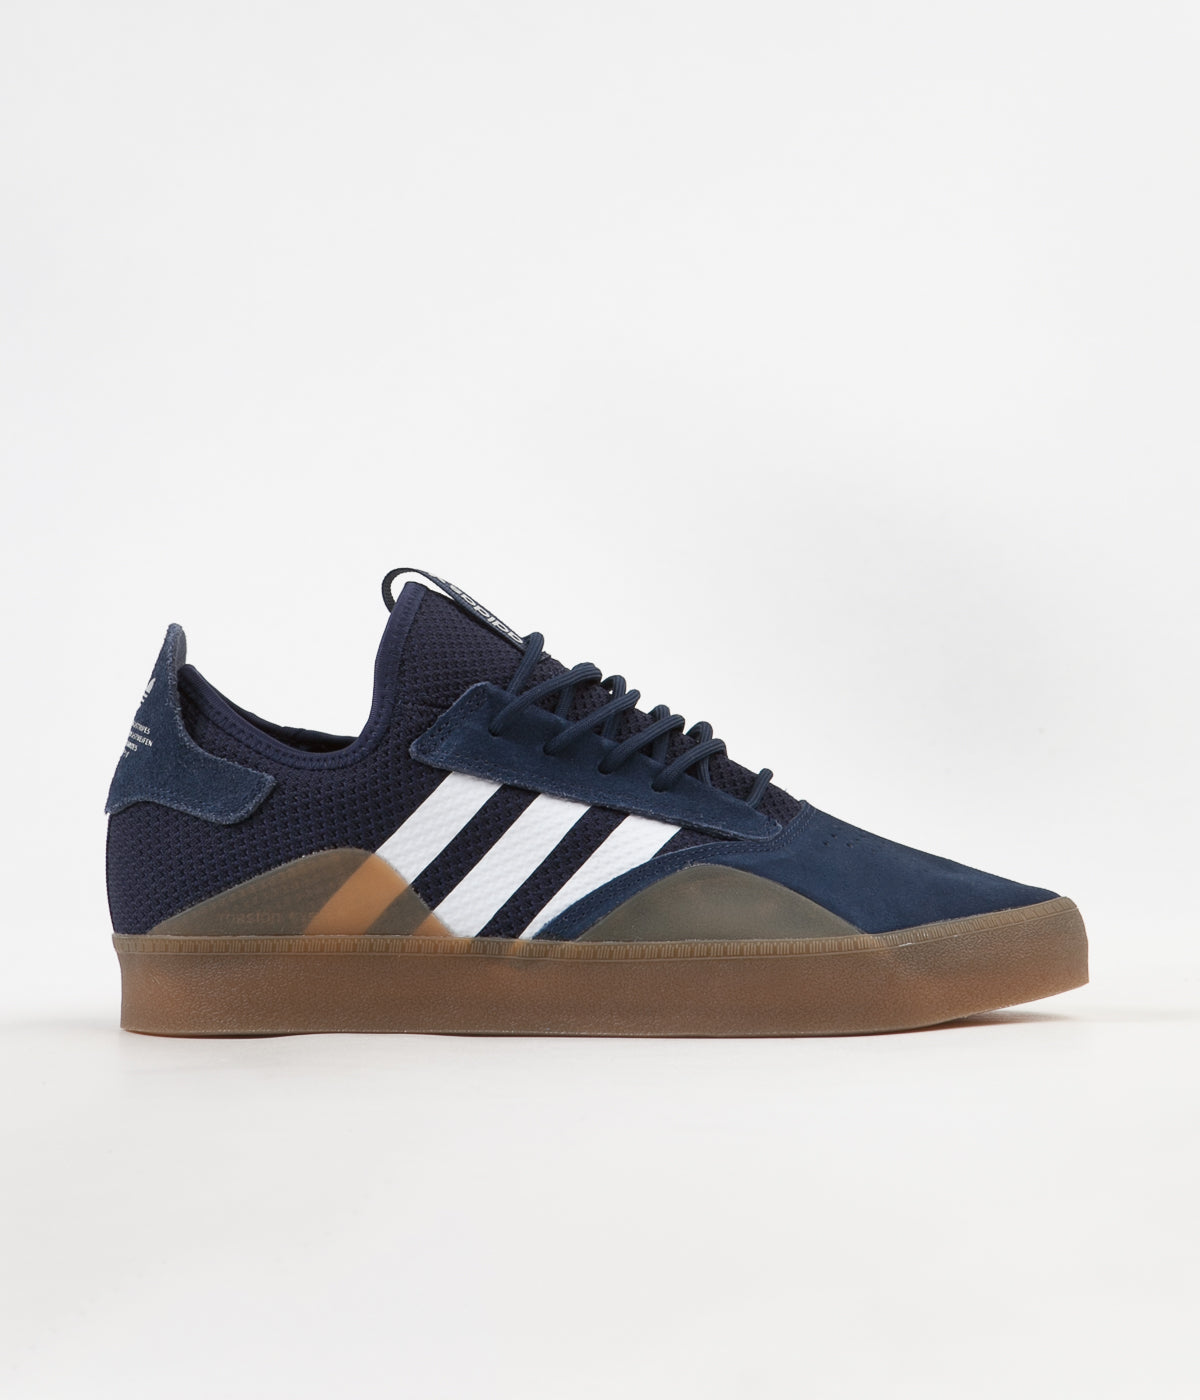 0e7556725e5b Adidas 3ST.001 Shoes - Collegiate Navy   FTW White   Gum4